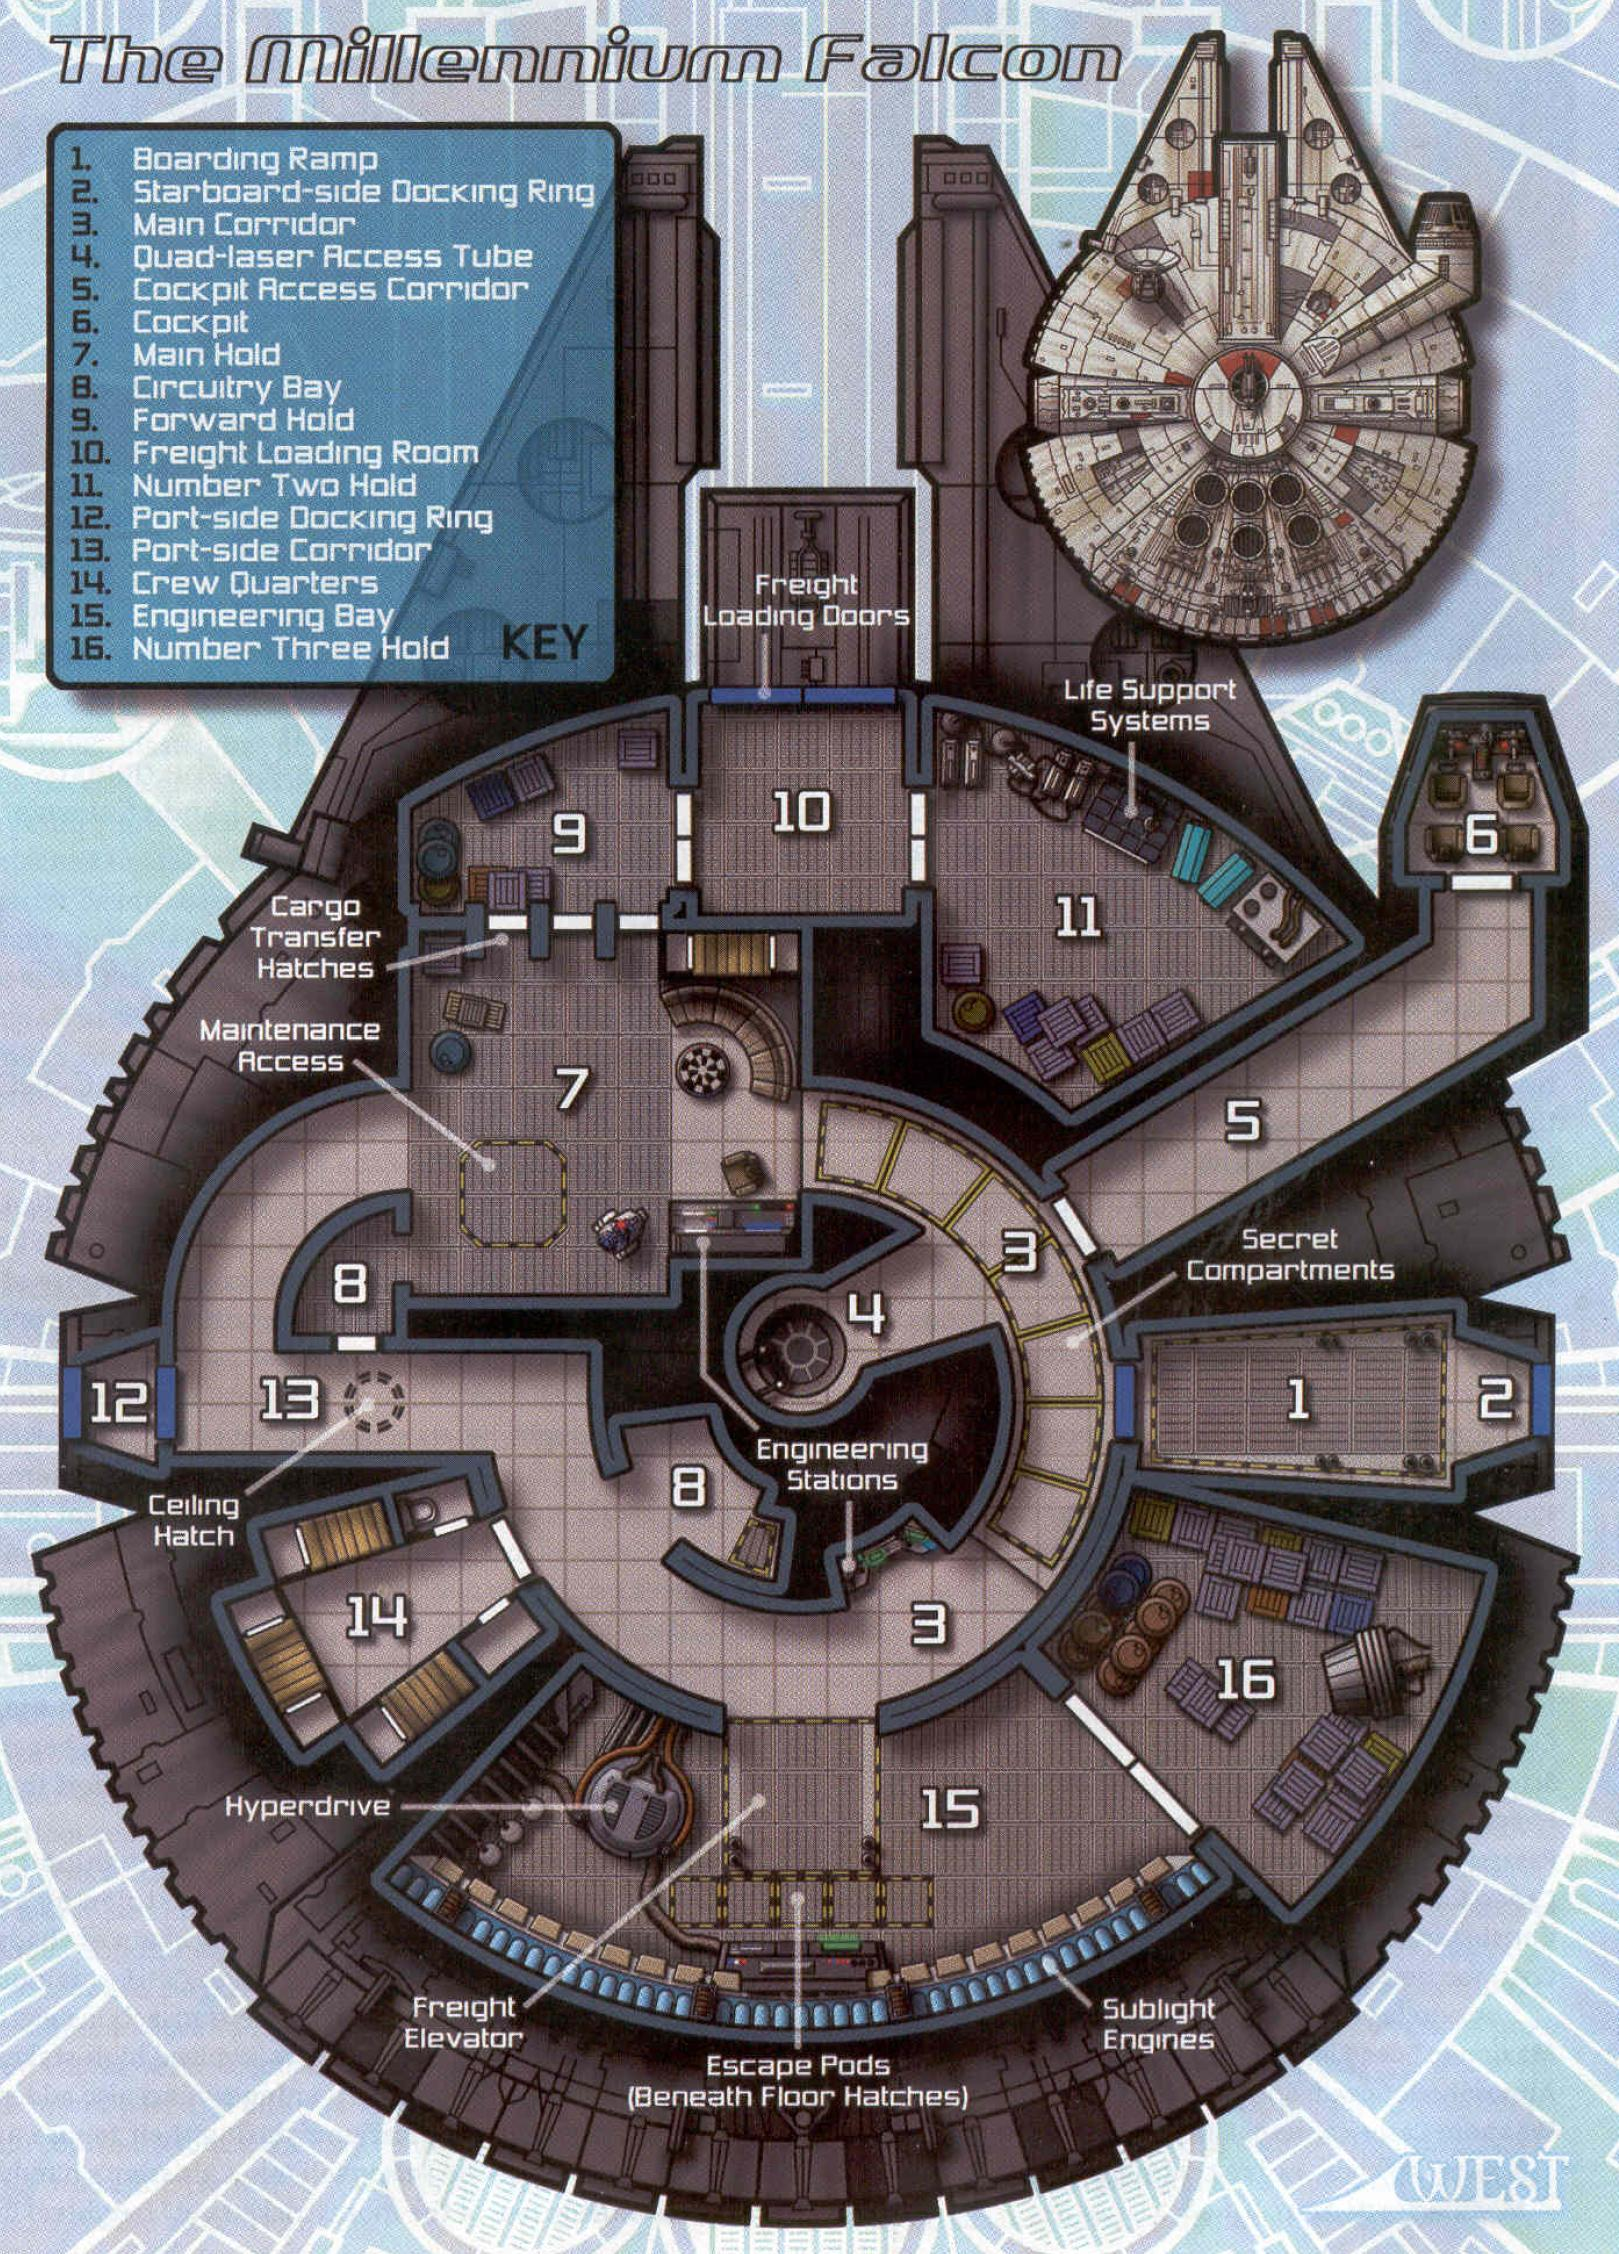 The Millennium Falcon Star Wars